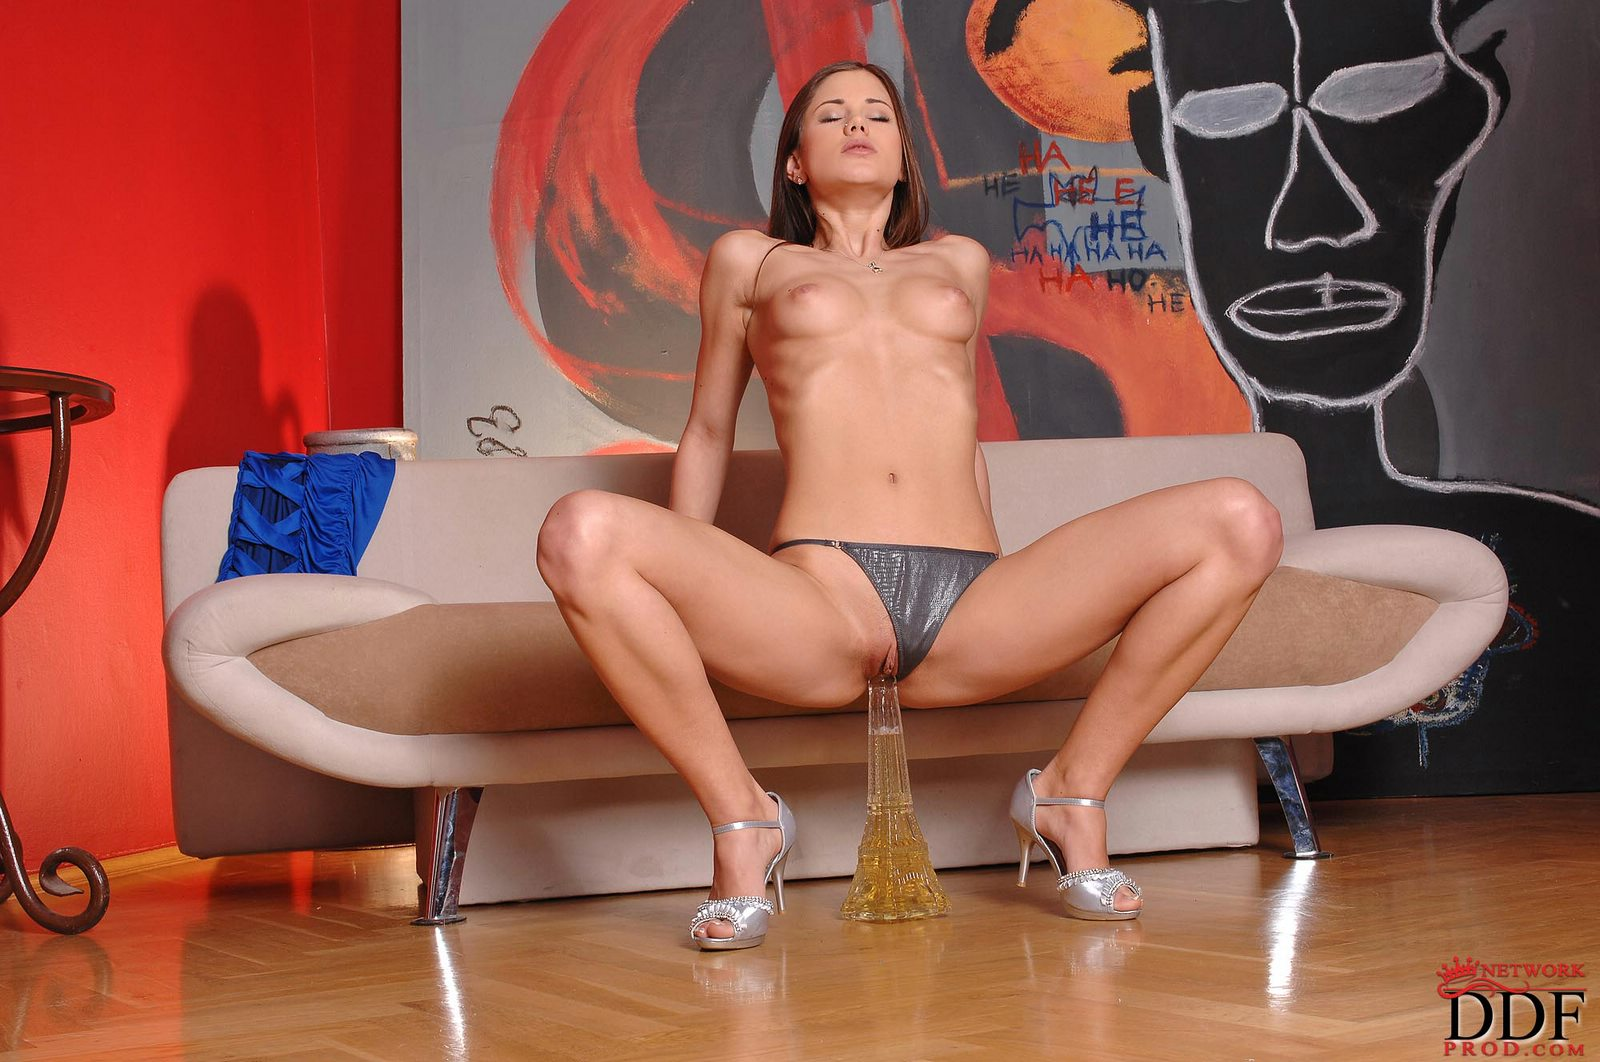 Seems Little caprice dildo with